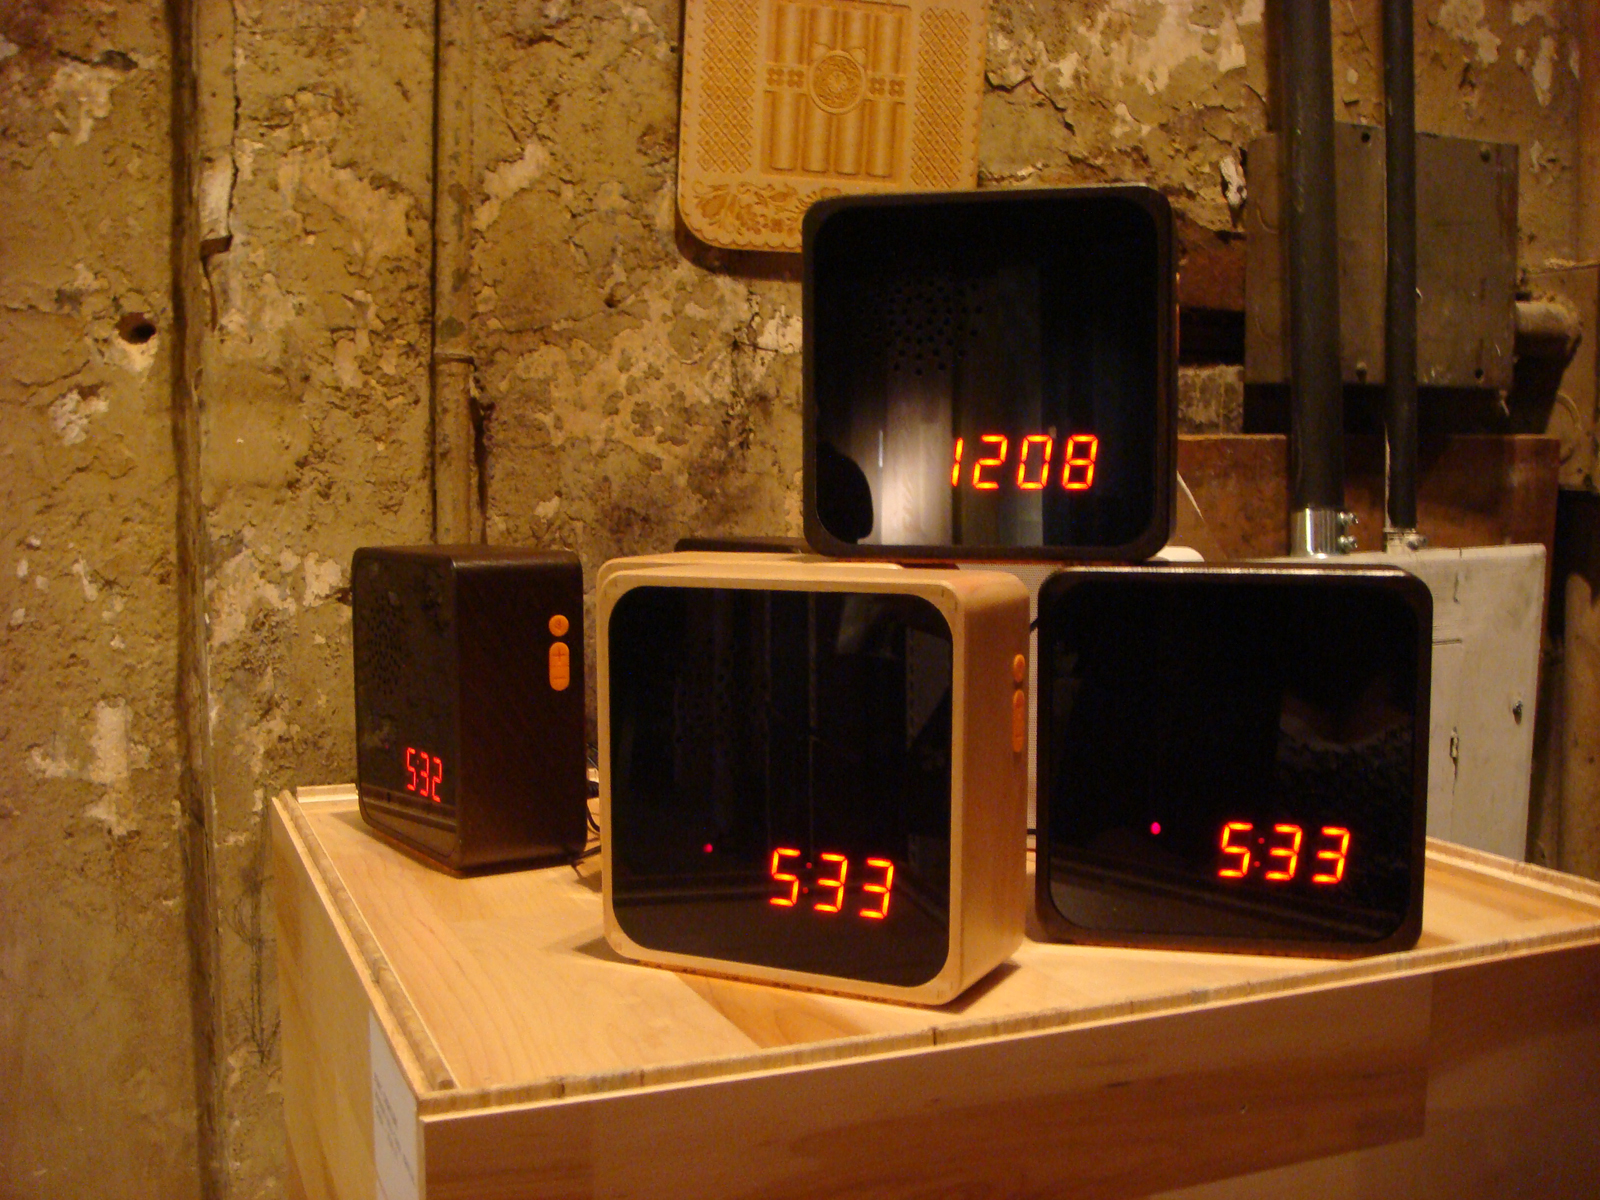 """<a href=""""http://www.furnicreations.com/"""">Furni Creations</a> is known for minimalist design balanced by a nod to the past. Case in point: the Alba alarm clock."""